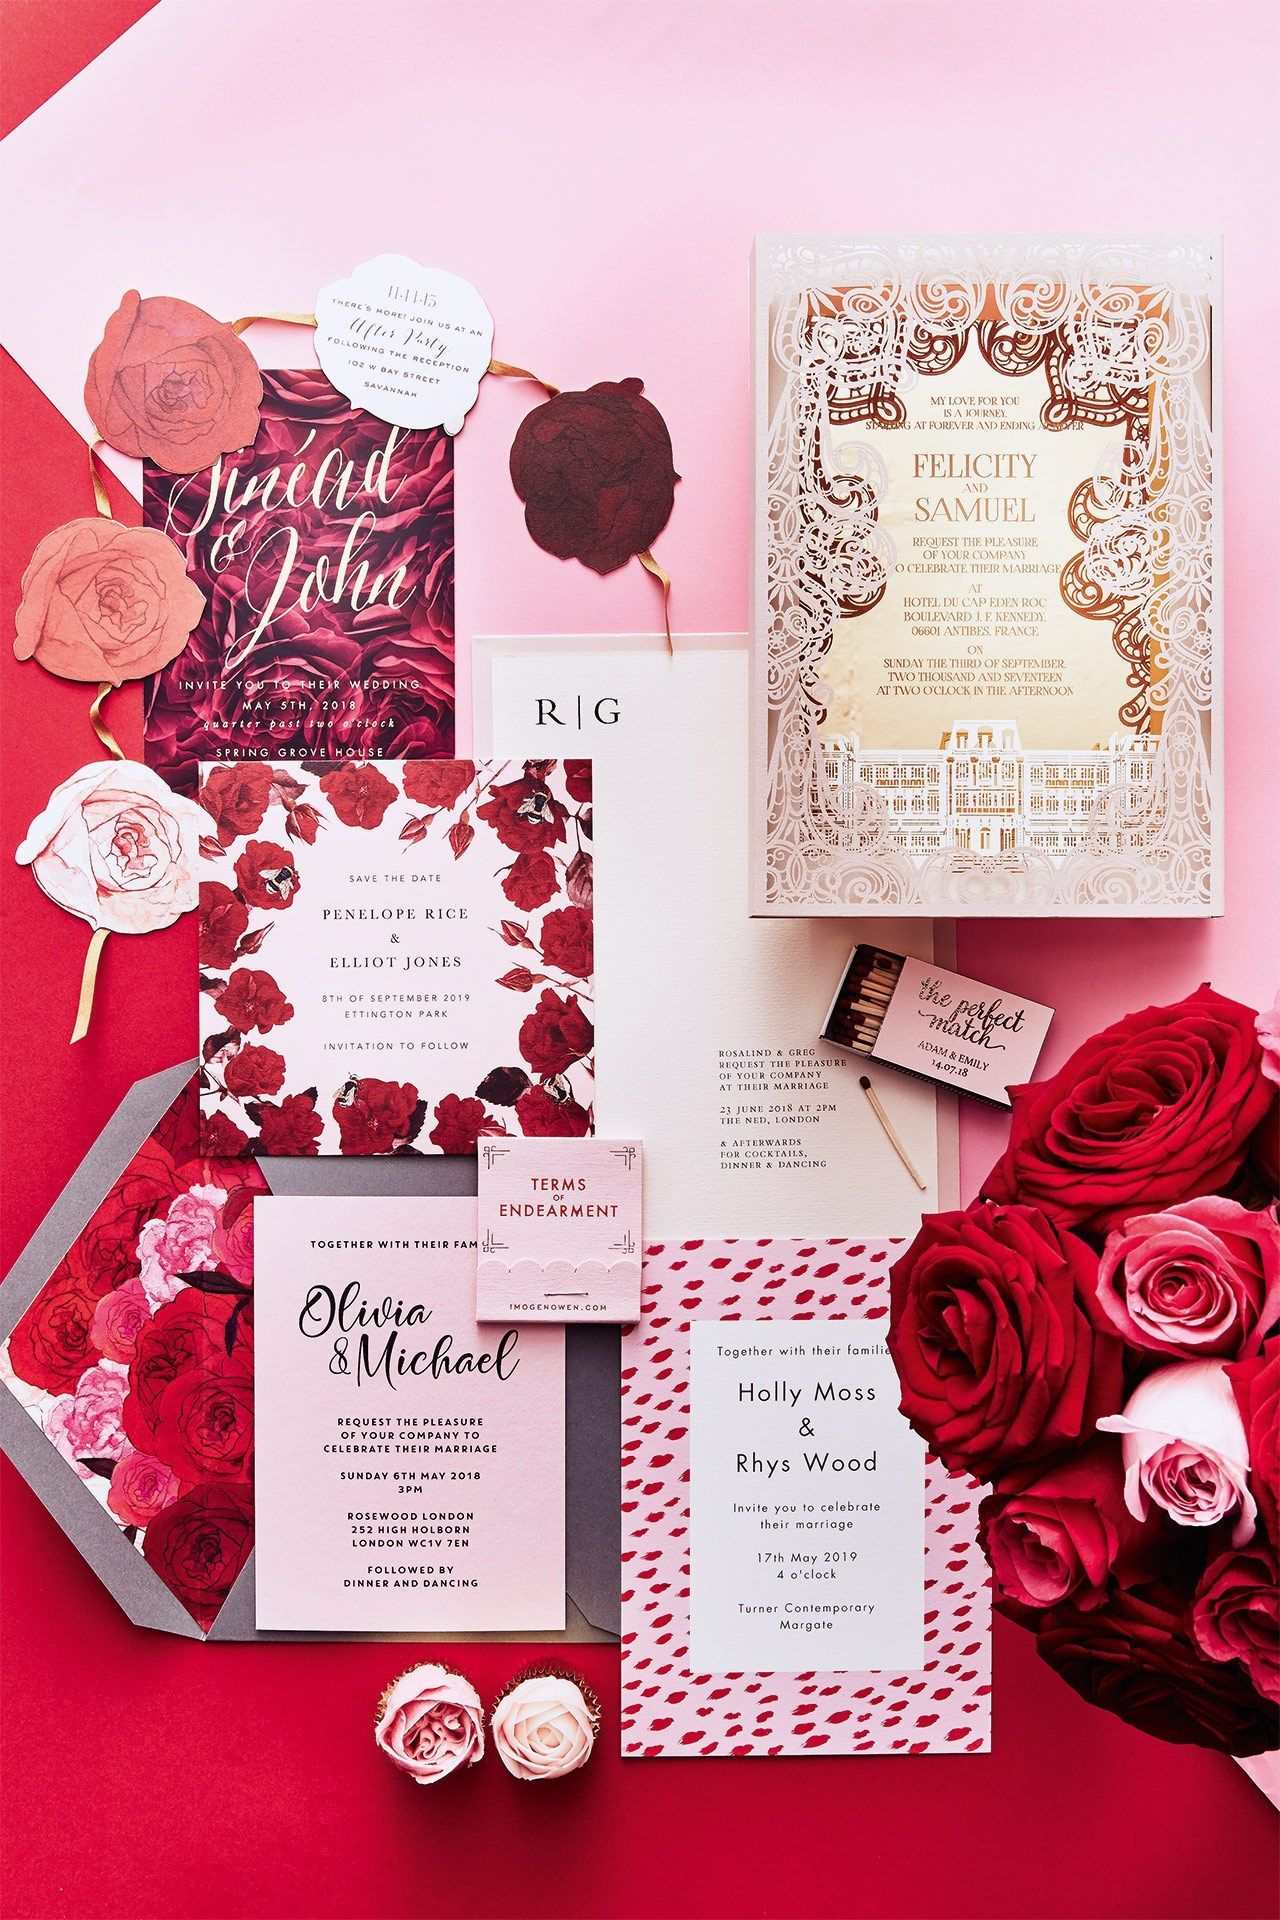 7 Steps To Follow For Your Wedding Invitation Wording | Invitation ...